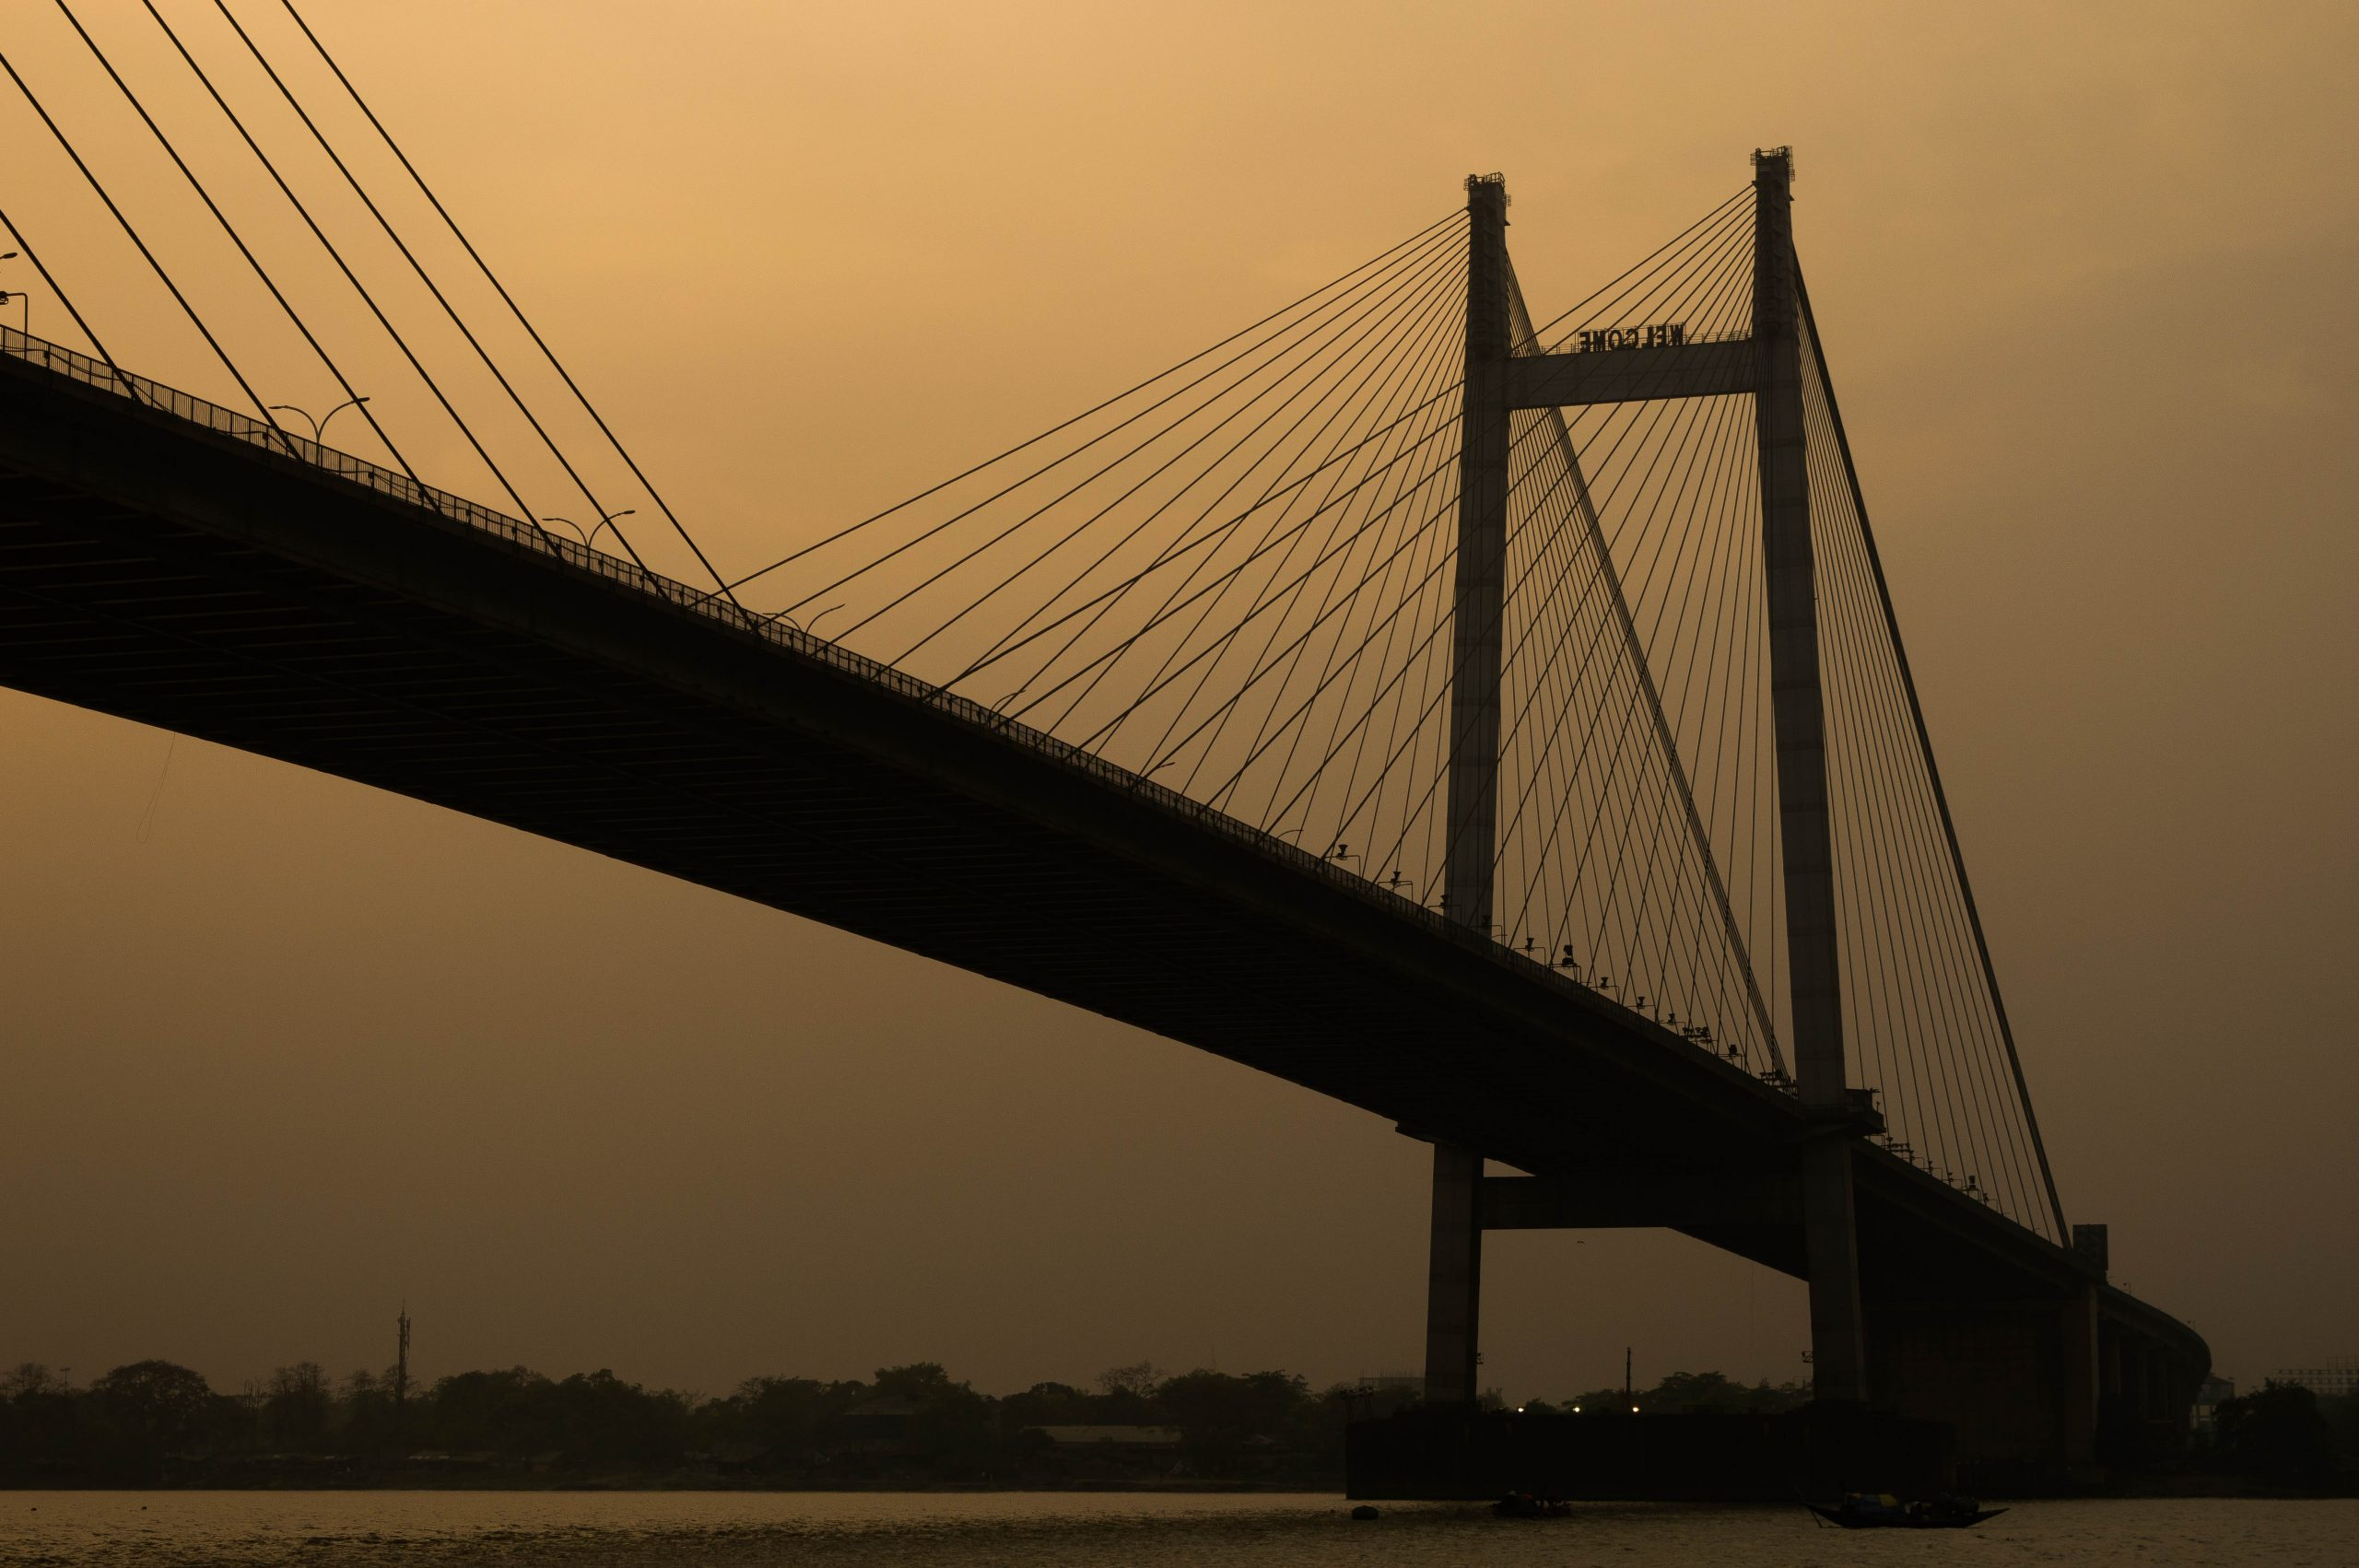 Vidyasagar bridge in Kolkata during evening